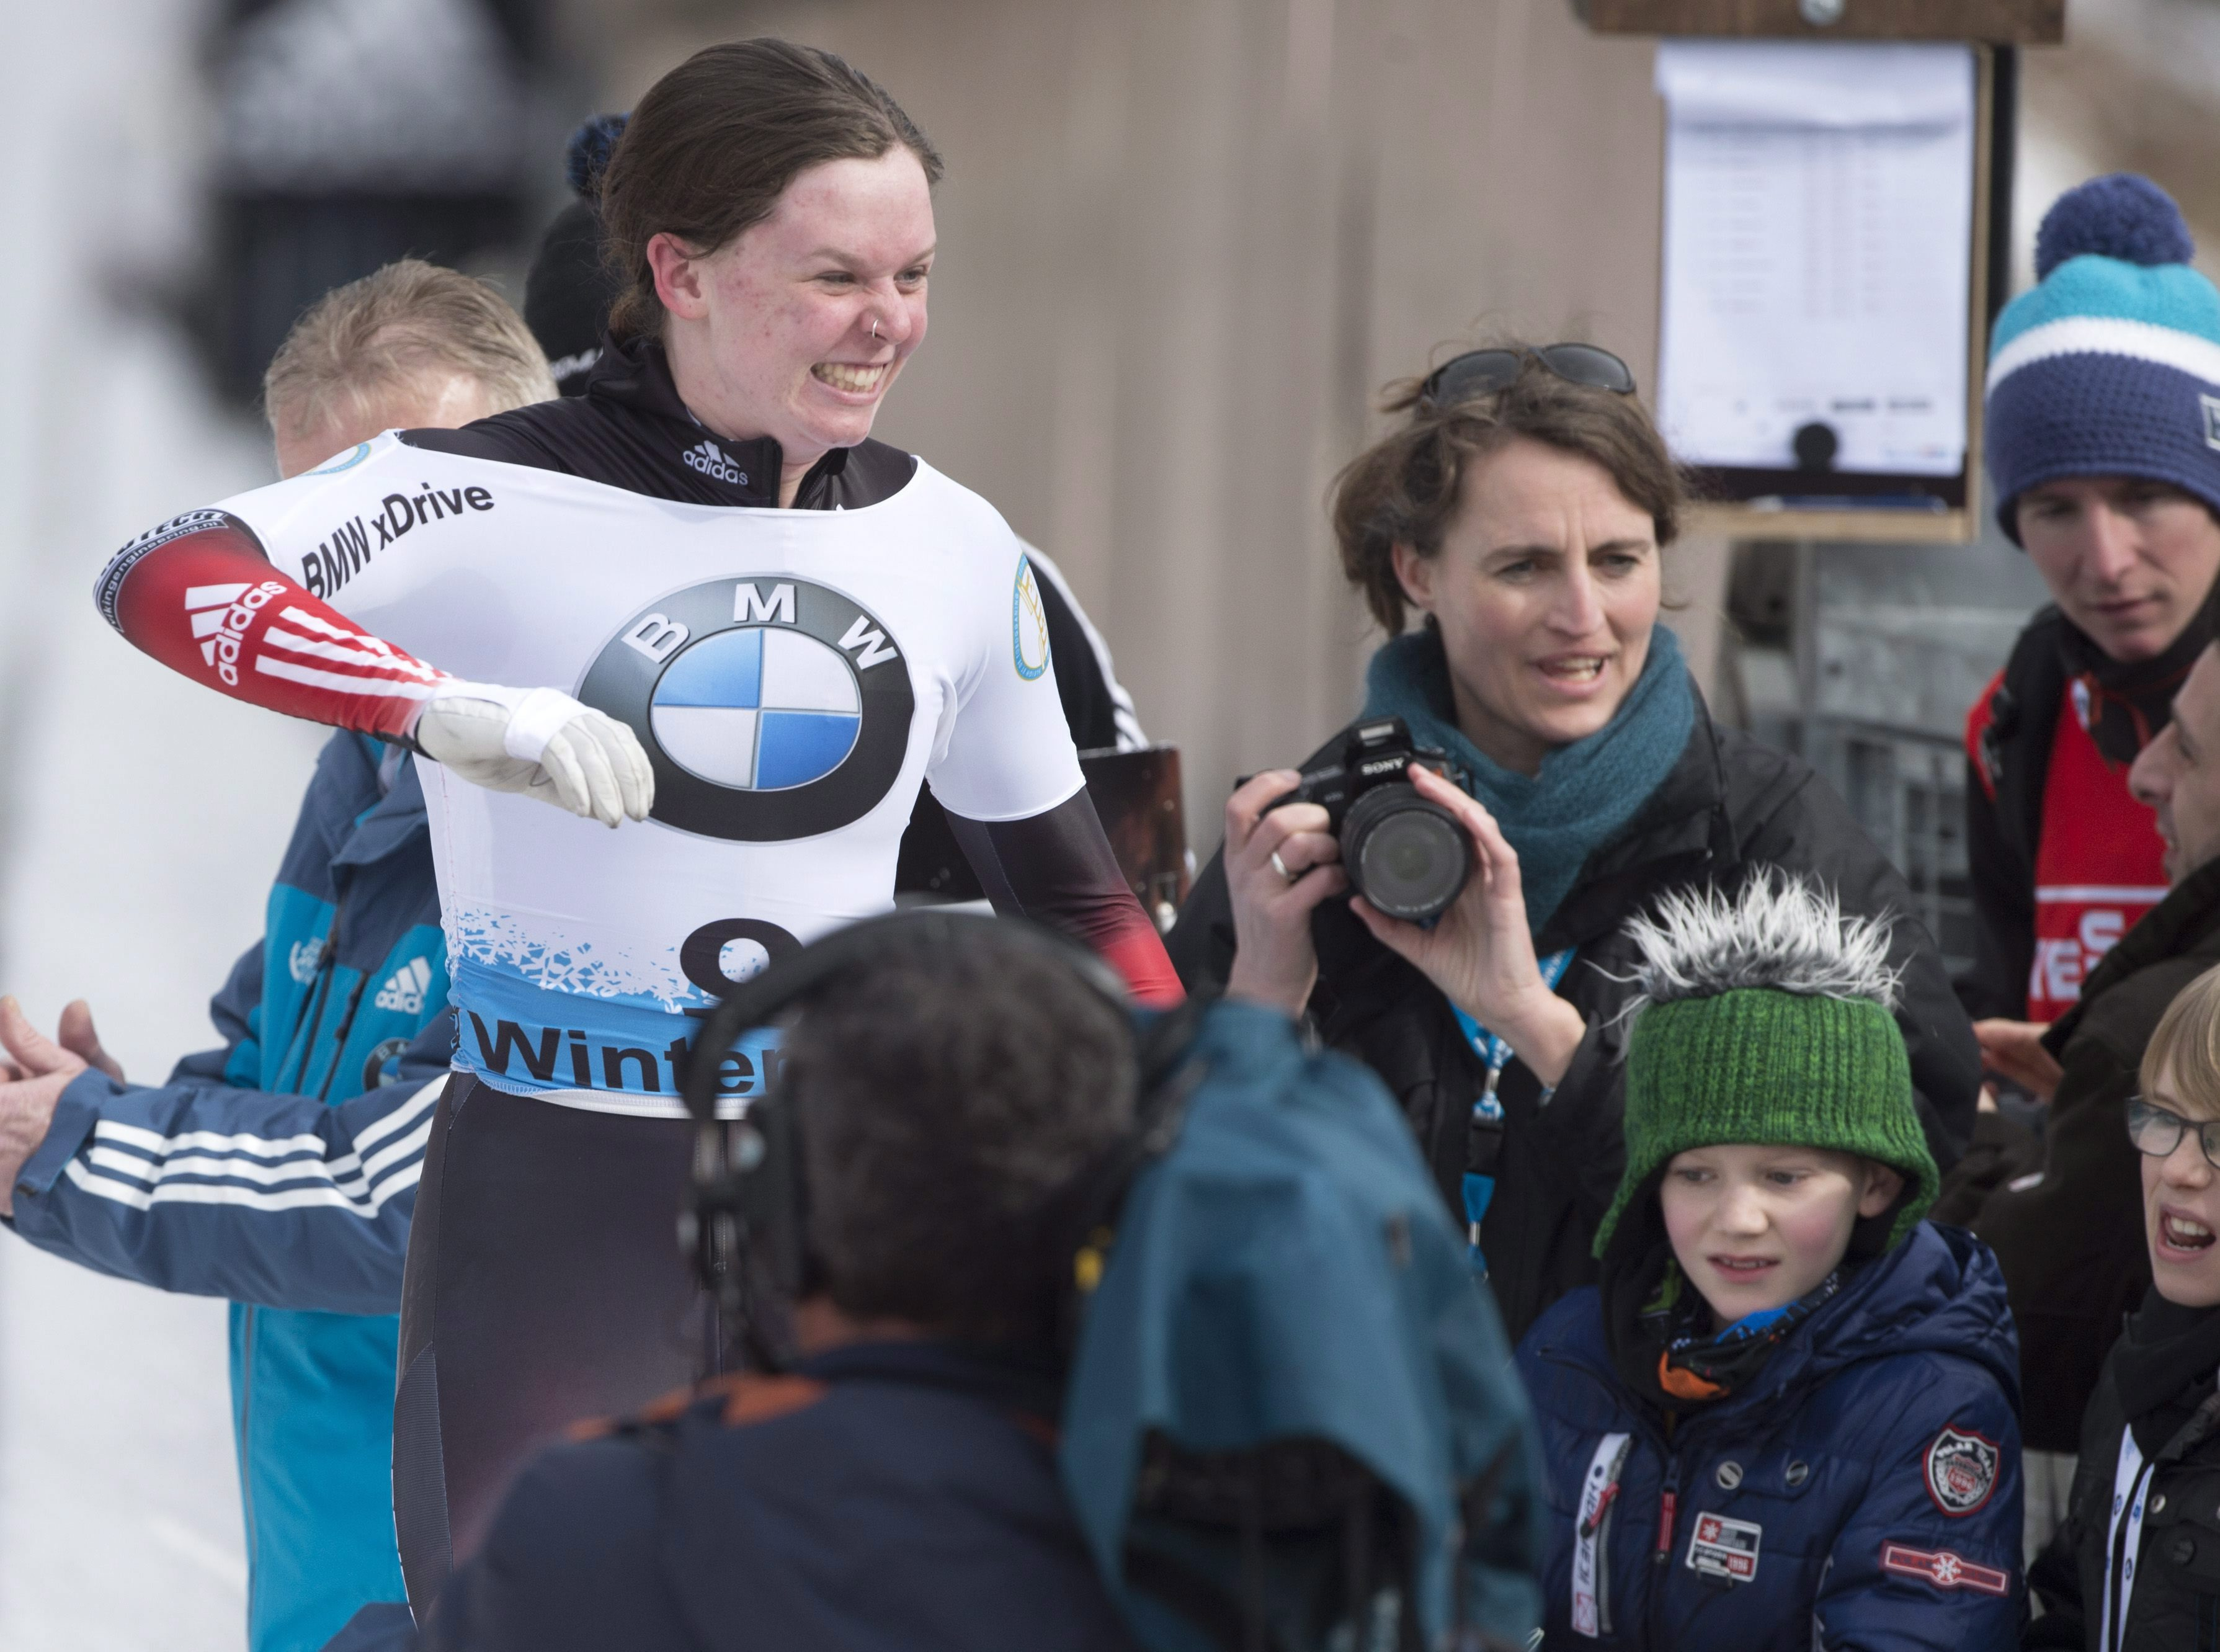 Bronze medallist Elisabeth Vathje of Canada, left, celebrates after the women's skeleton race at the Bobsleigh and Skeleton World Championships in Winterberg, Germany, Saturday, March 7, 2015. (AP Photo/Jens Meyer)